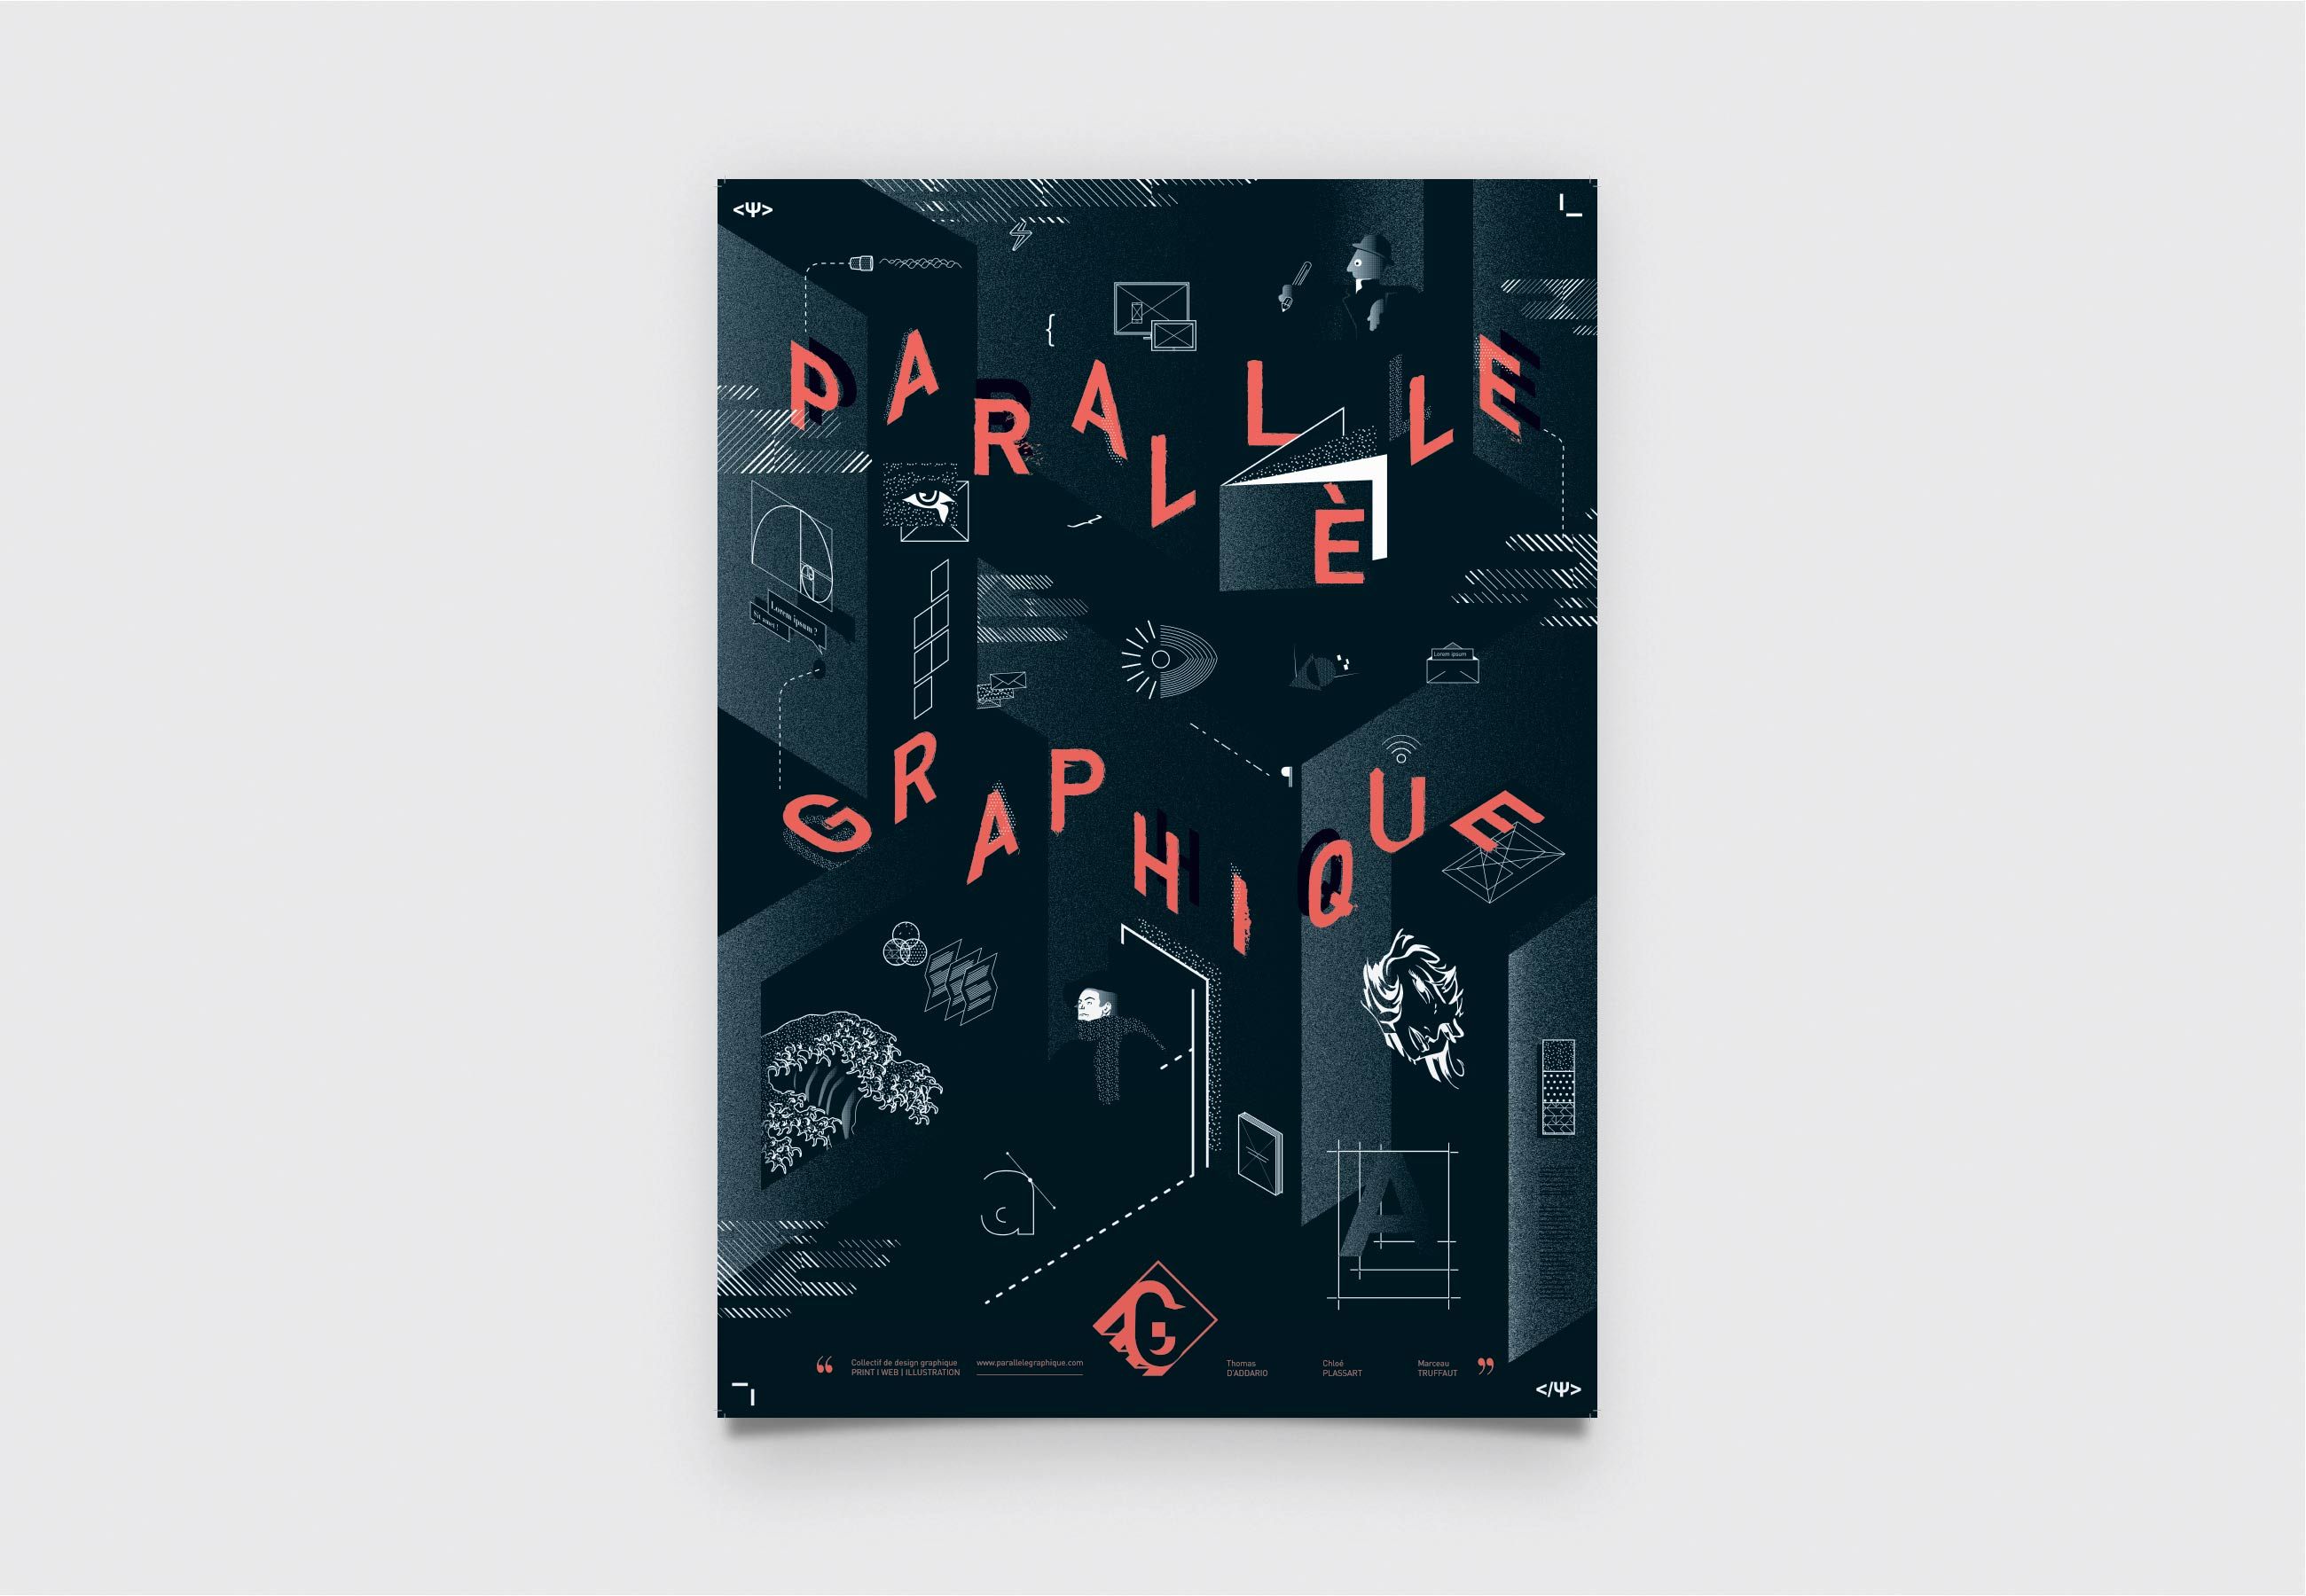 graphic_design_scotland_01_parallele_graphique